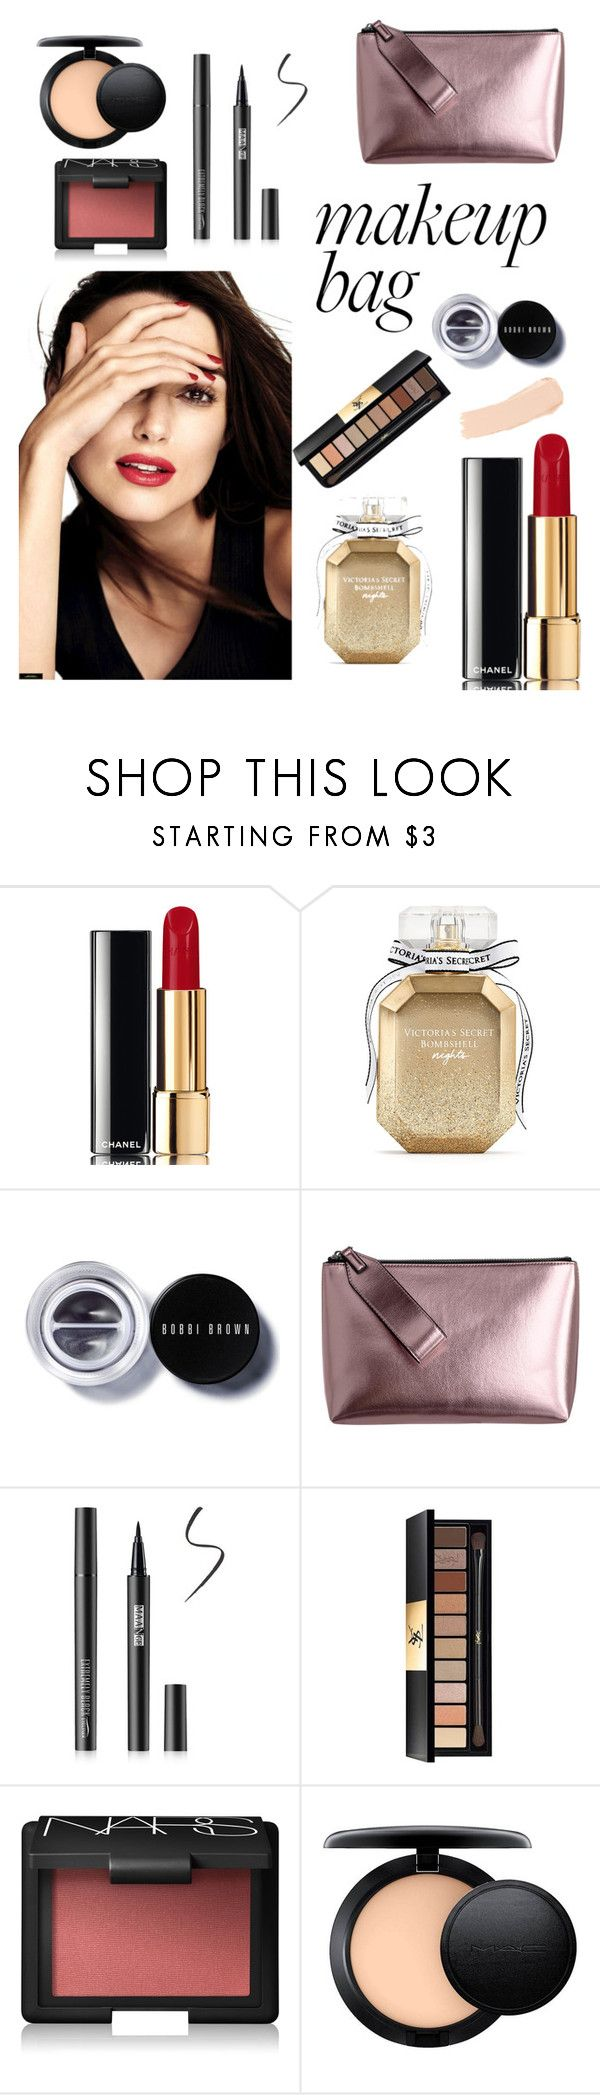 """""""What's Inside My Makeup Bag?"""" by azzahrajulia ❤ liked on Polyvore featuring beauty, Chanel, Victoria's Secret, Bobbi Brown Cosmetics, Yves Saint Laurent, NARS Cosmetics, MAC Cosmetics and La Mer"""